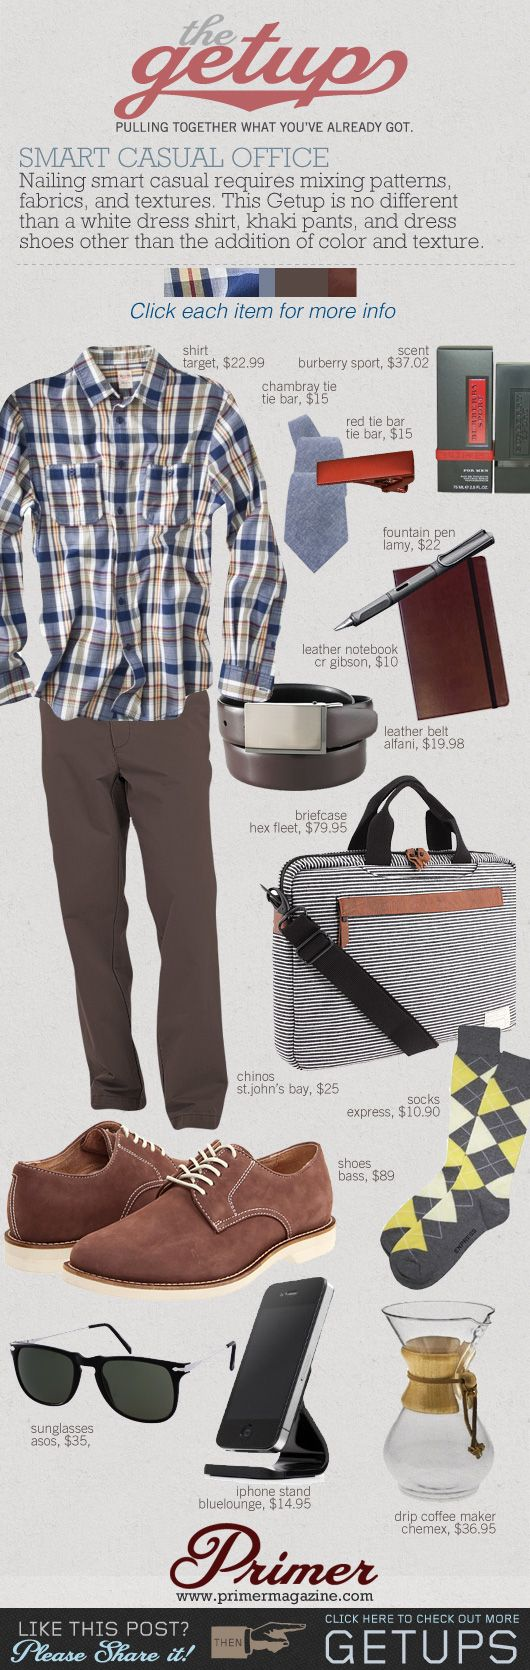 The Getup: Smart Casual Office            Nailing smart casual requires mixing patterns, fabrics, and textures. This Getup is no different than a white dress shirt, khaki pants, and dress shoes other than the addition of color and texture.